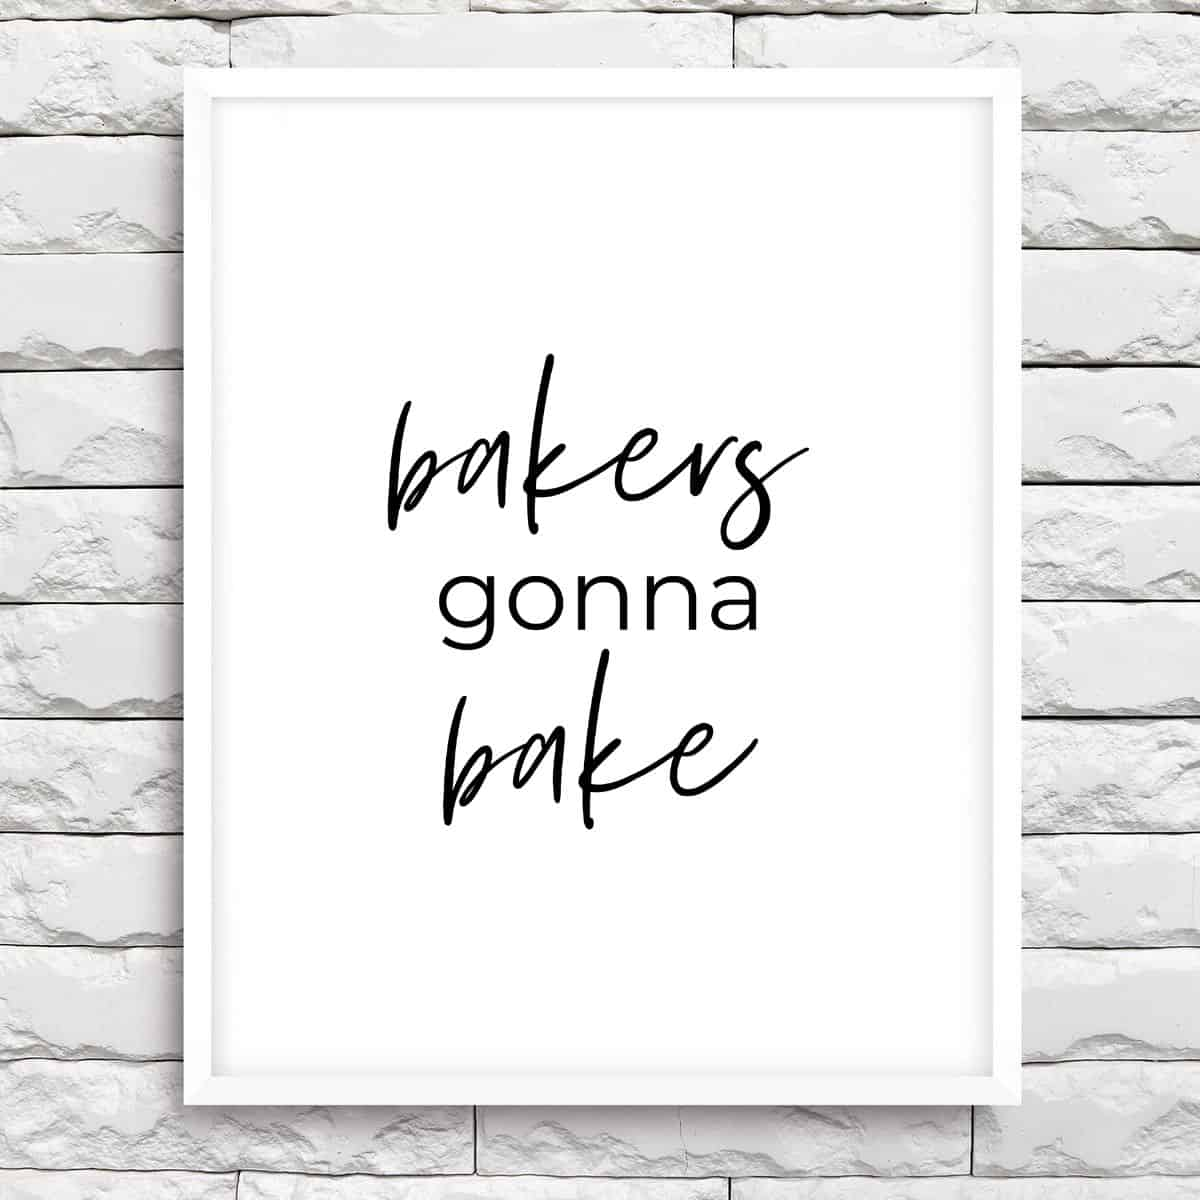 White frame on the brick wall with the text: Bakers gonna bake